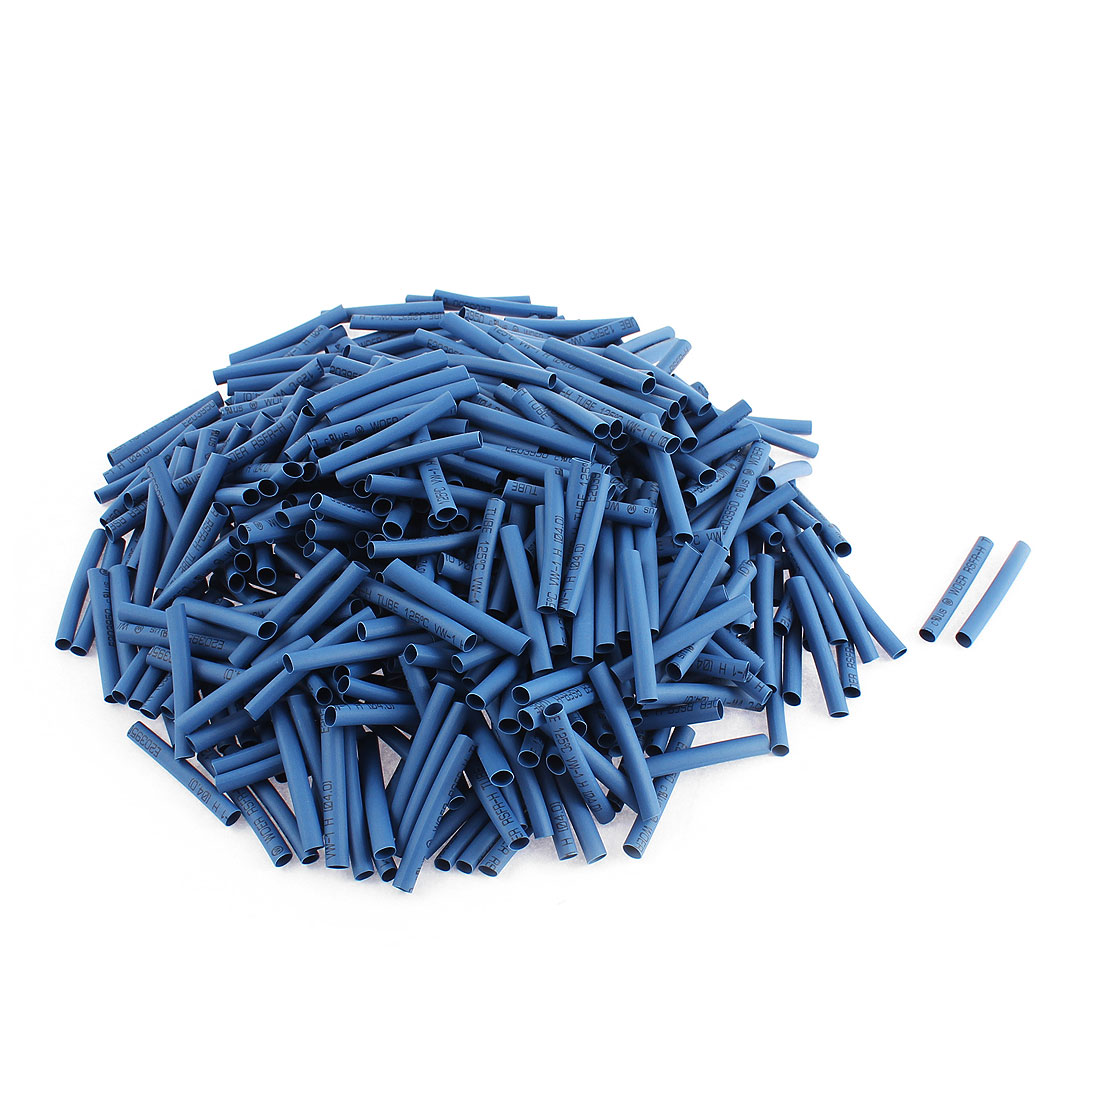 Electrical Connection Cable Sleeve 40mm Long Heat Shrink Tubing Wrap Blue 400Pcs